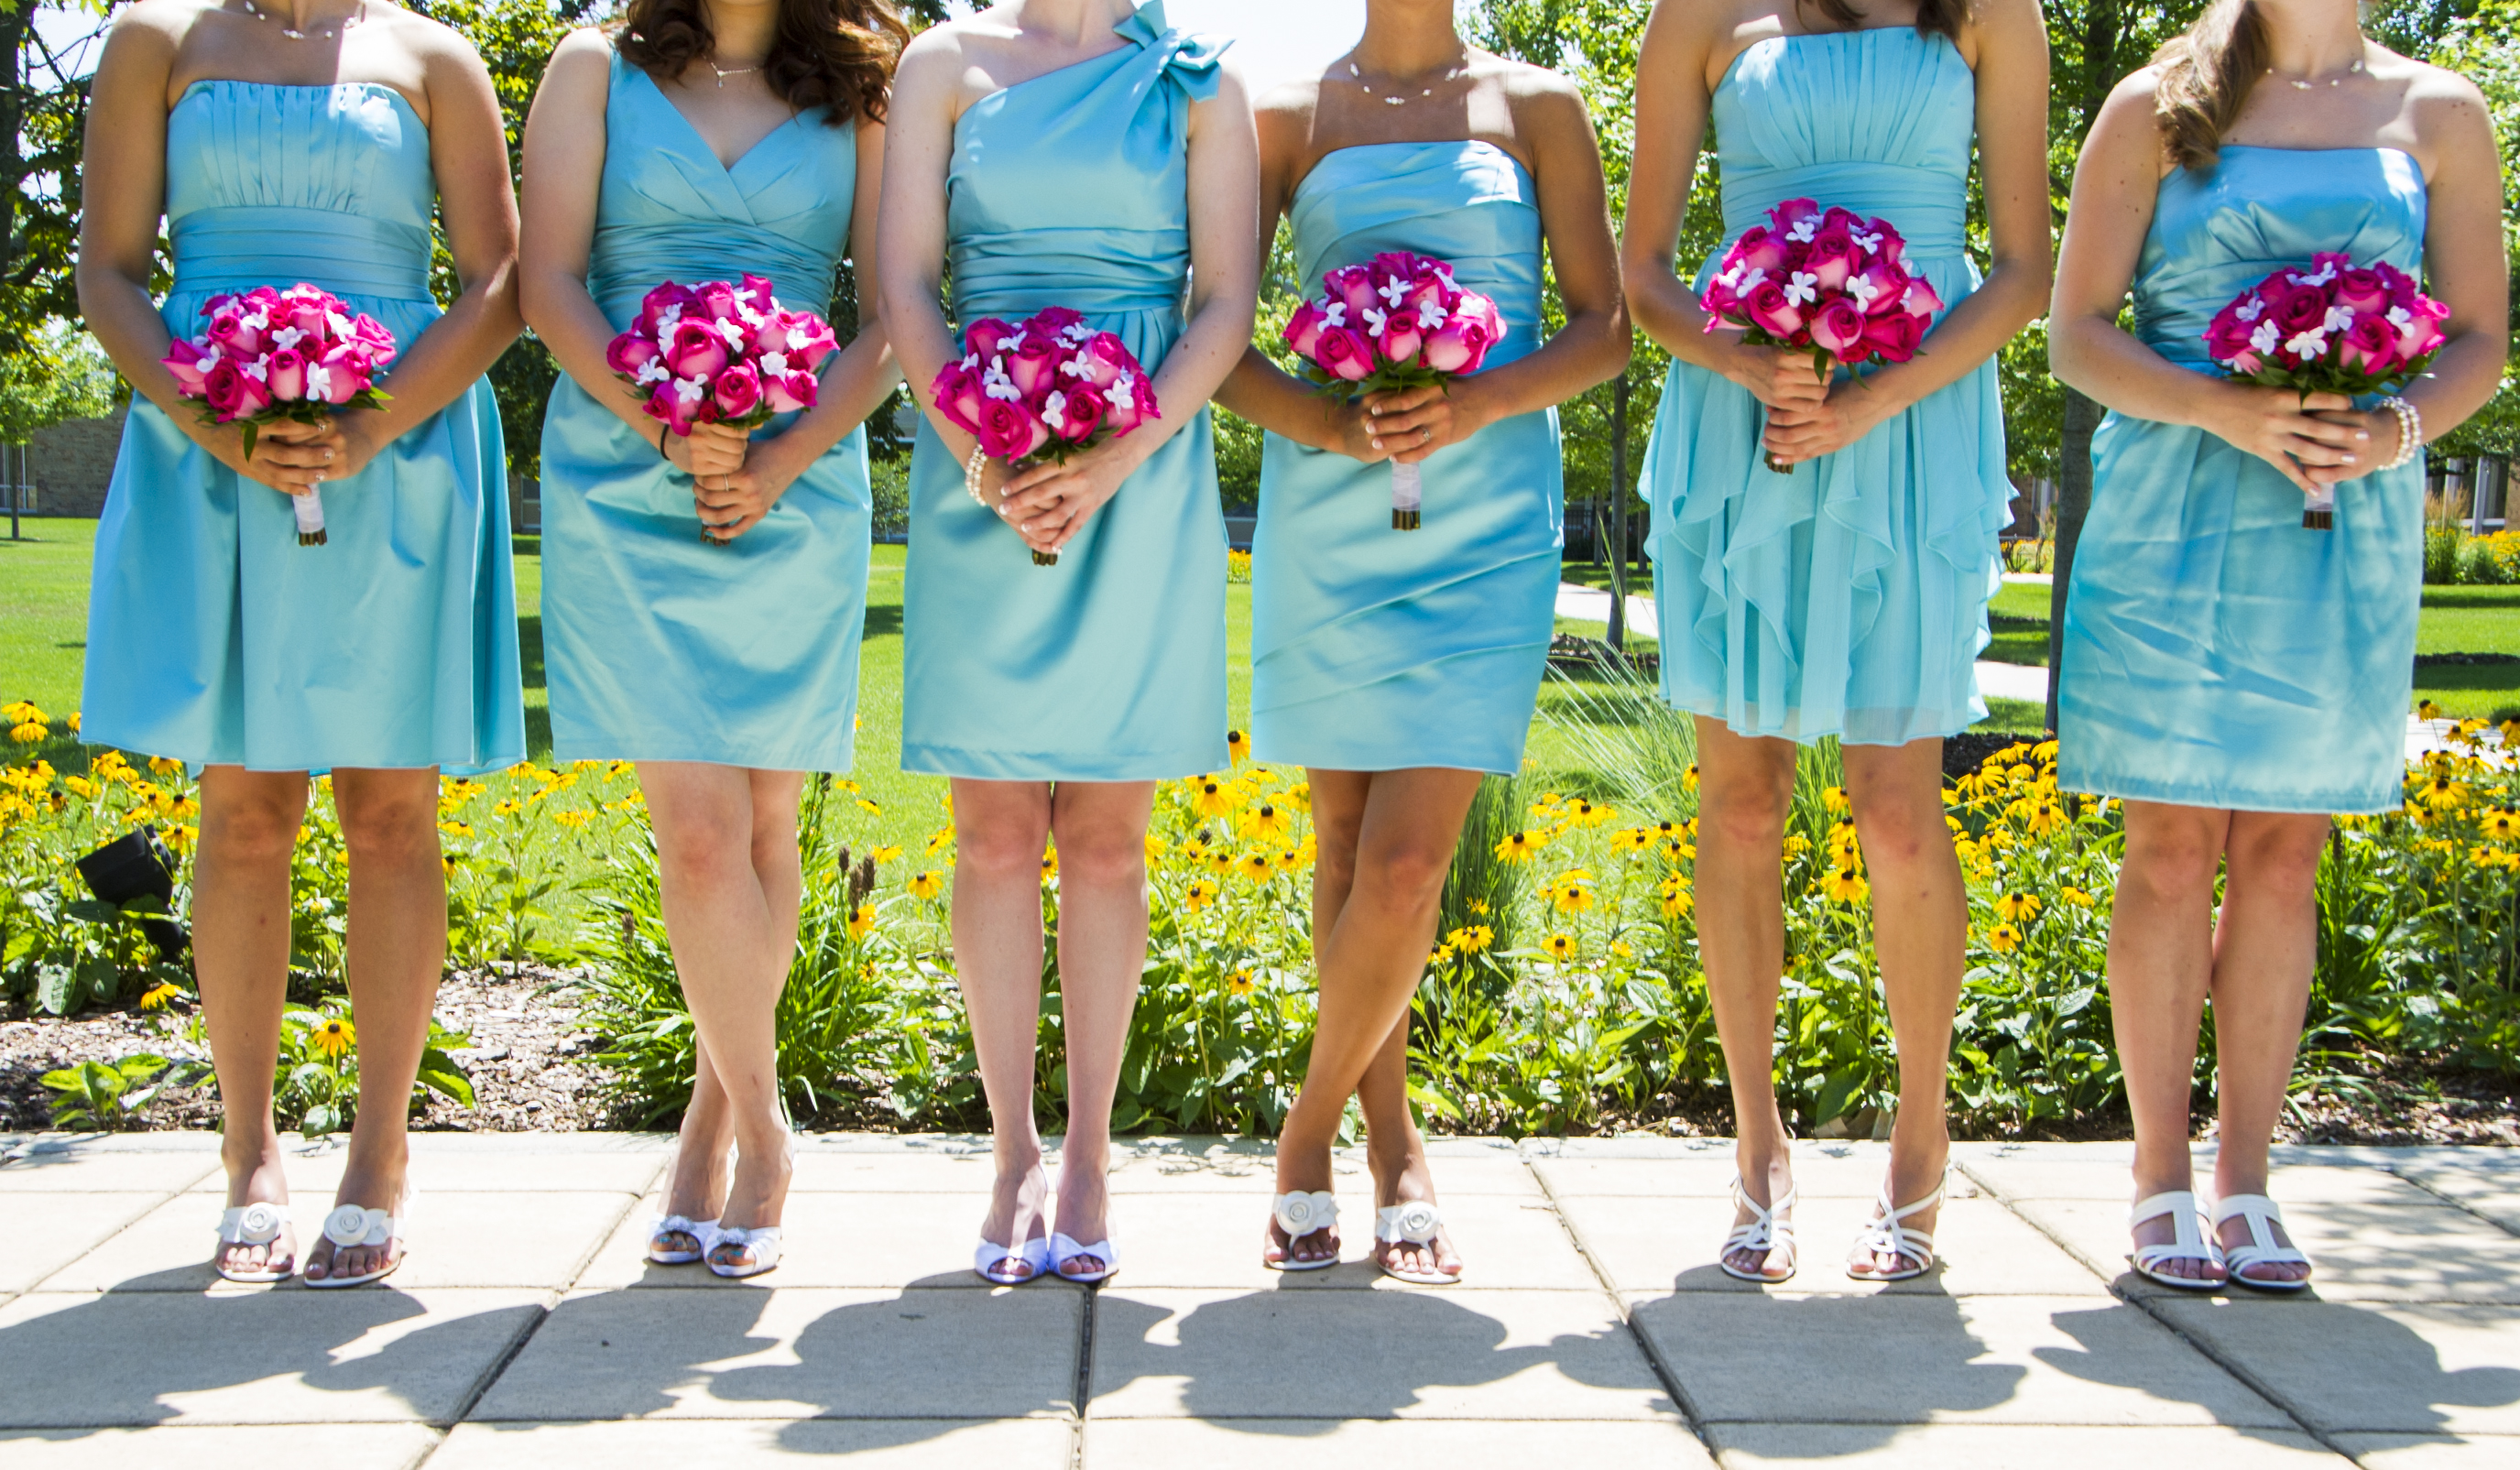 Alternative bridesmaids dresses reilly images photography blog a bridesmaids dress alternative designer rentals ombrellifo Image collections